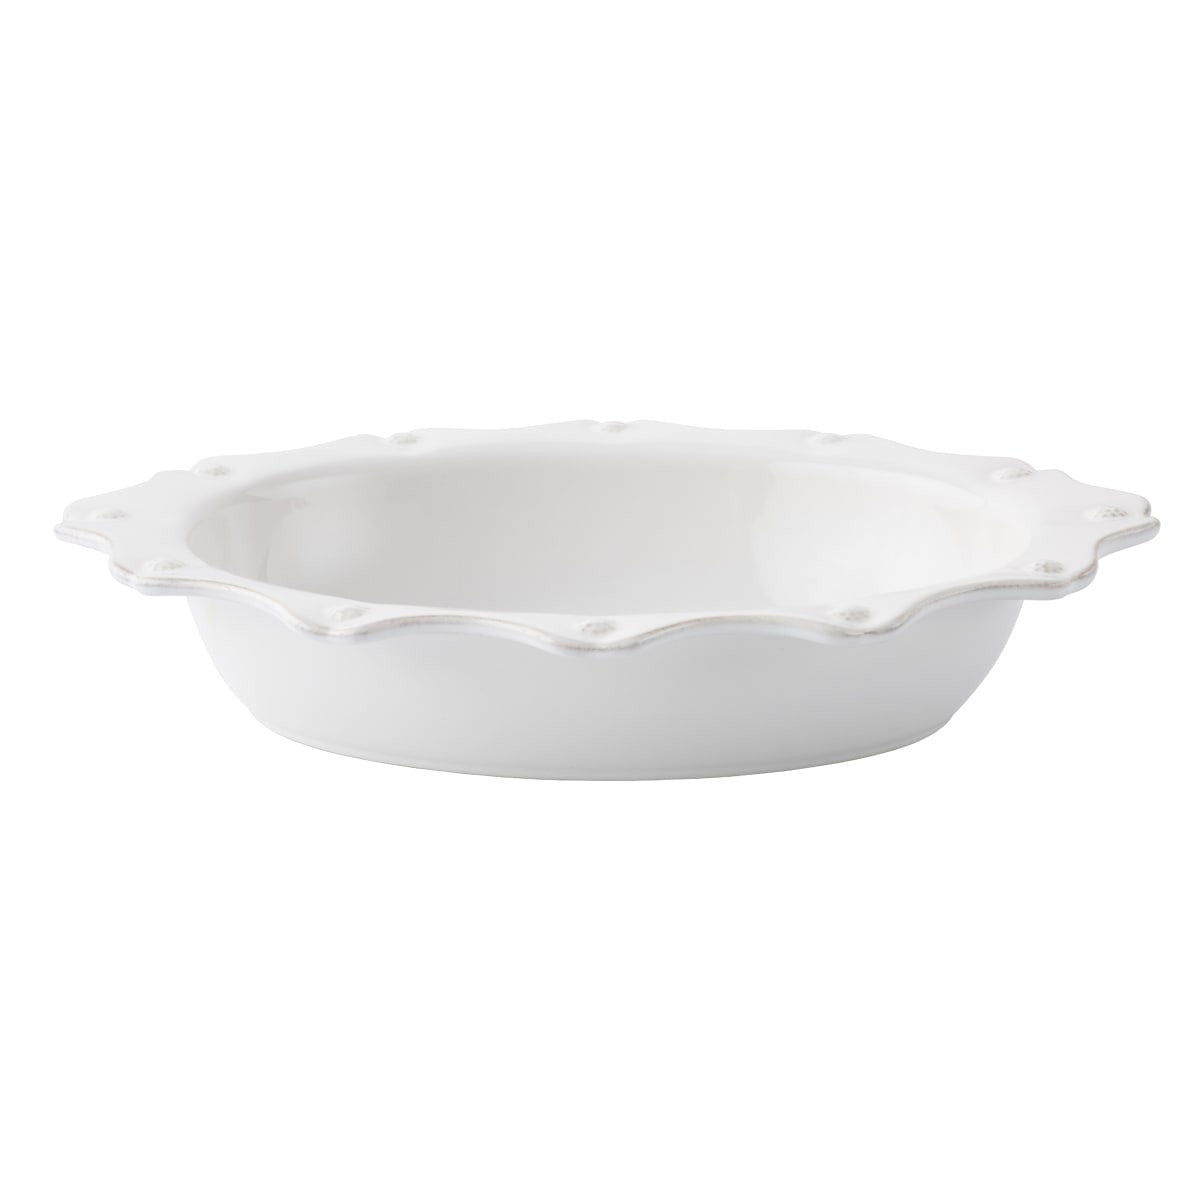 "Juliska - Berry & Thread Whitewash 13"" Oval Baker"